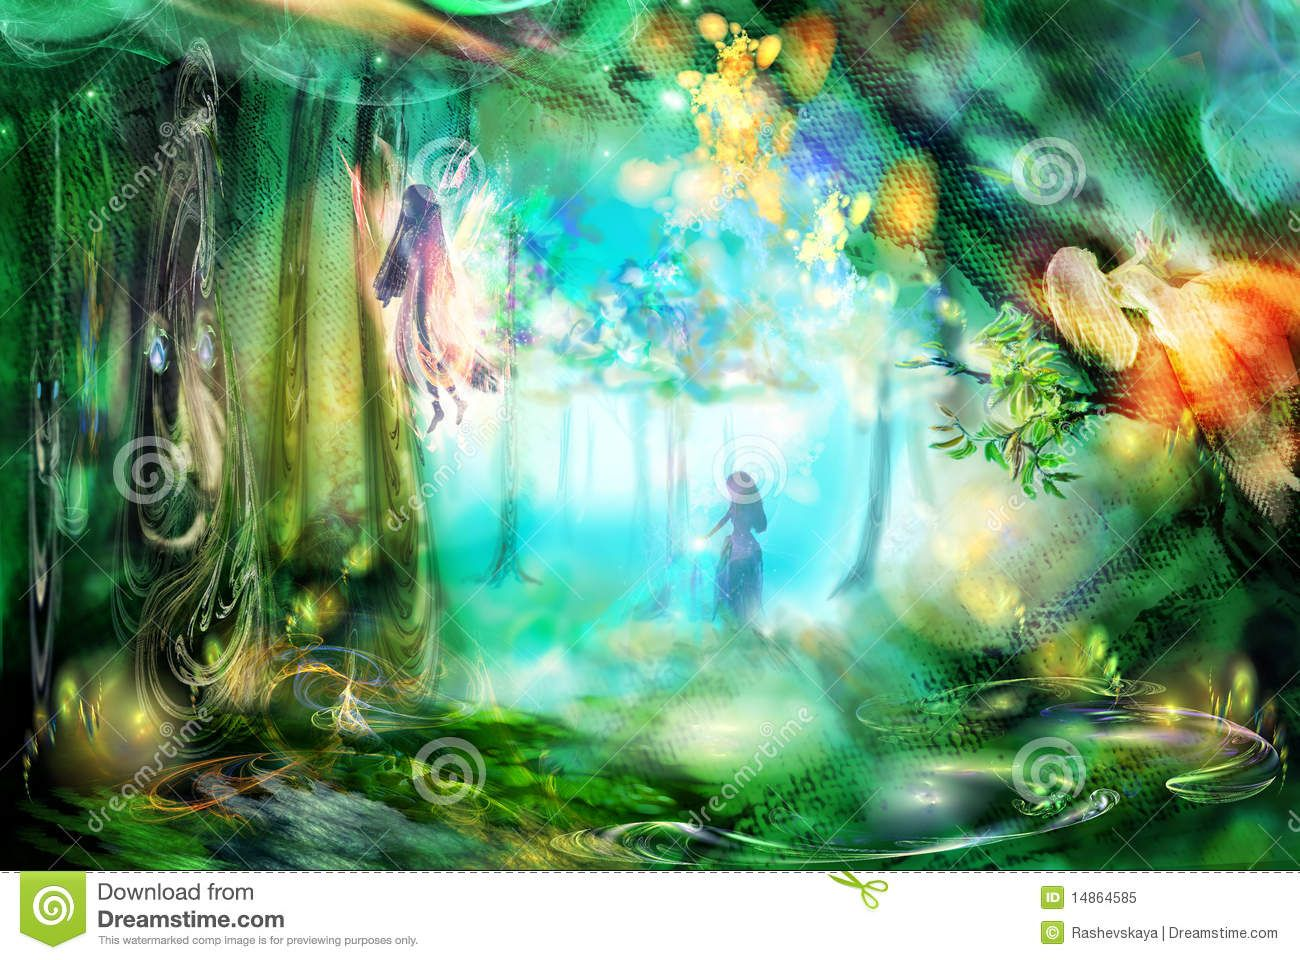 The Magic Forest With Fairies - Download From Over 28 Million High Quality Stock Photos, Images, Vectors. Sign up for FREE today. Image: 14864585